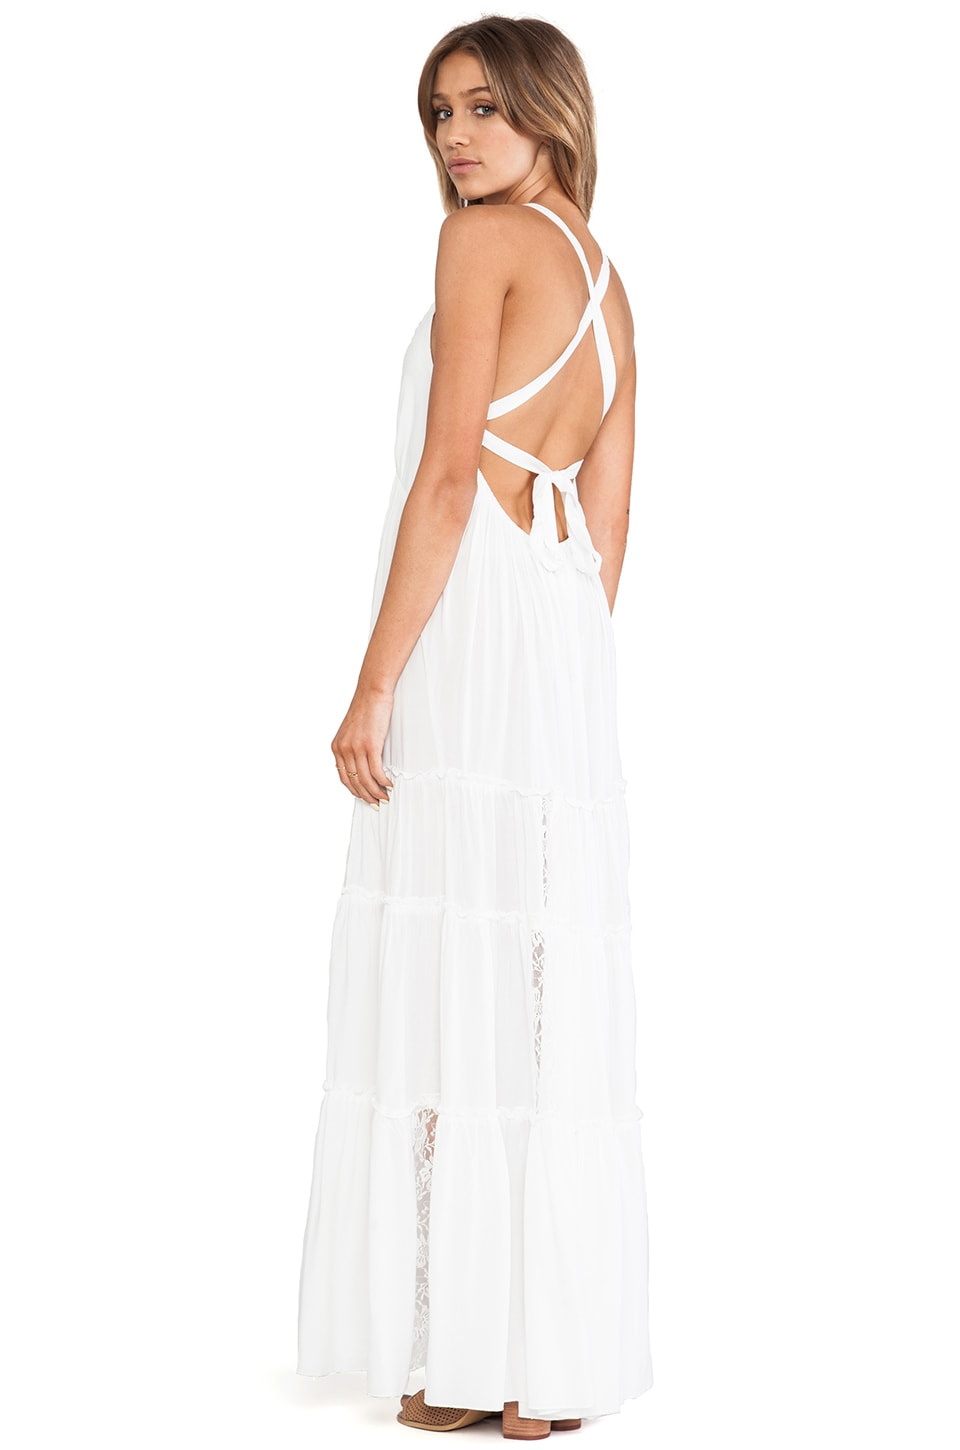 6 SHORE ROAD Twin Isles Maxi Dress in Coconut